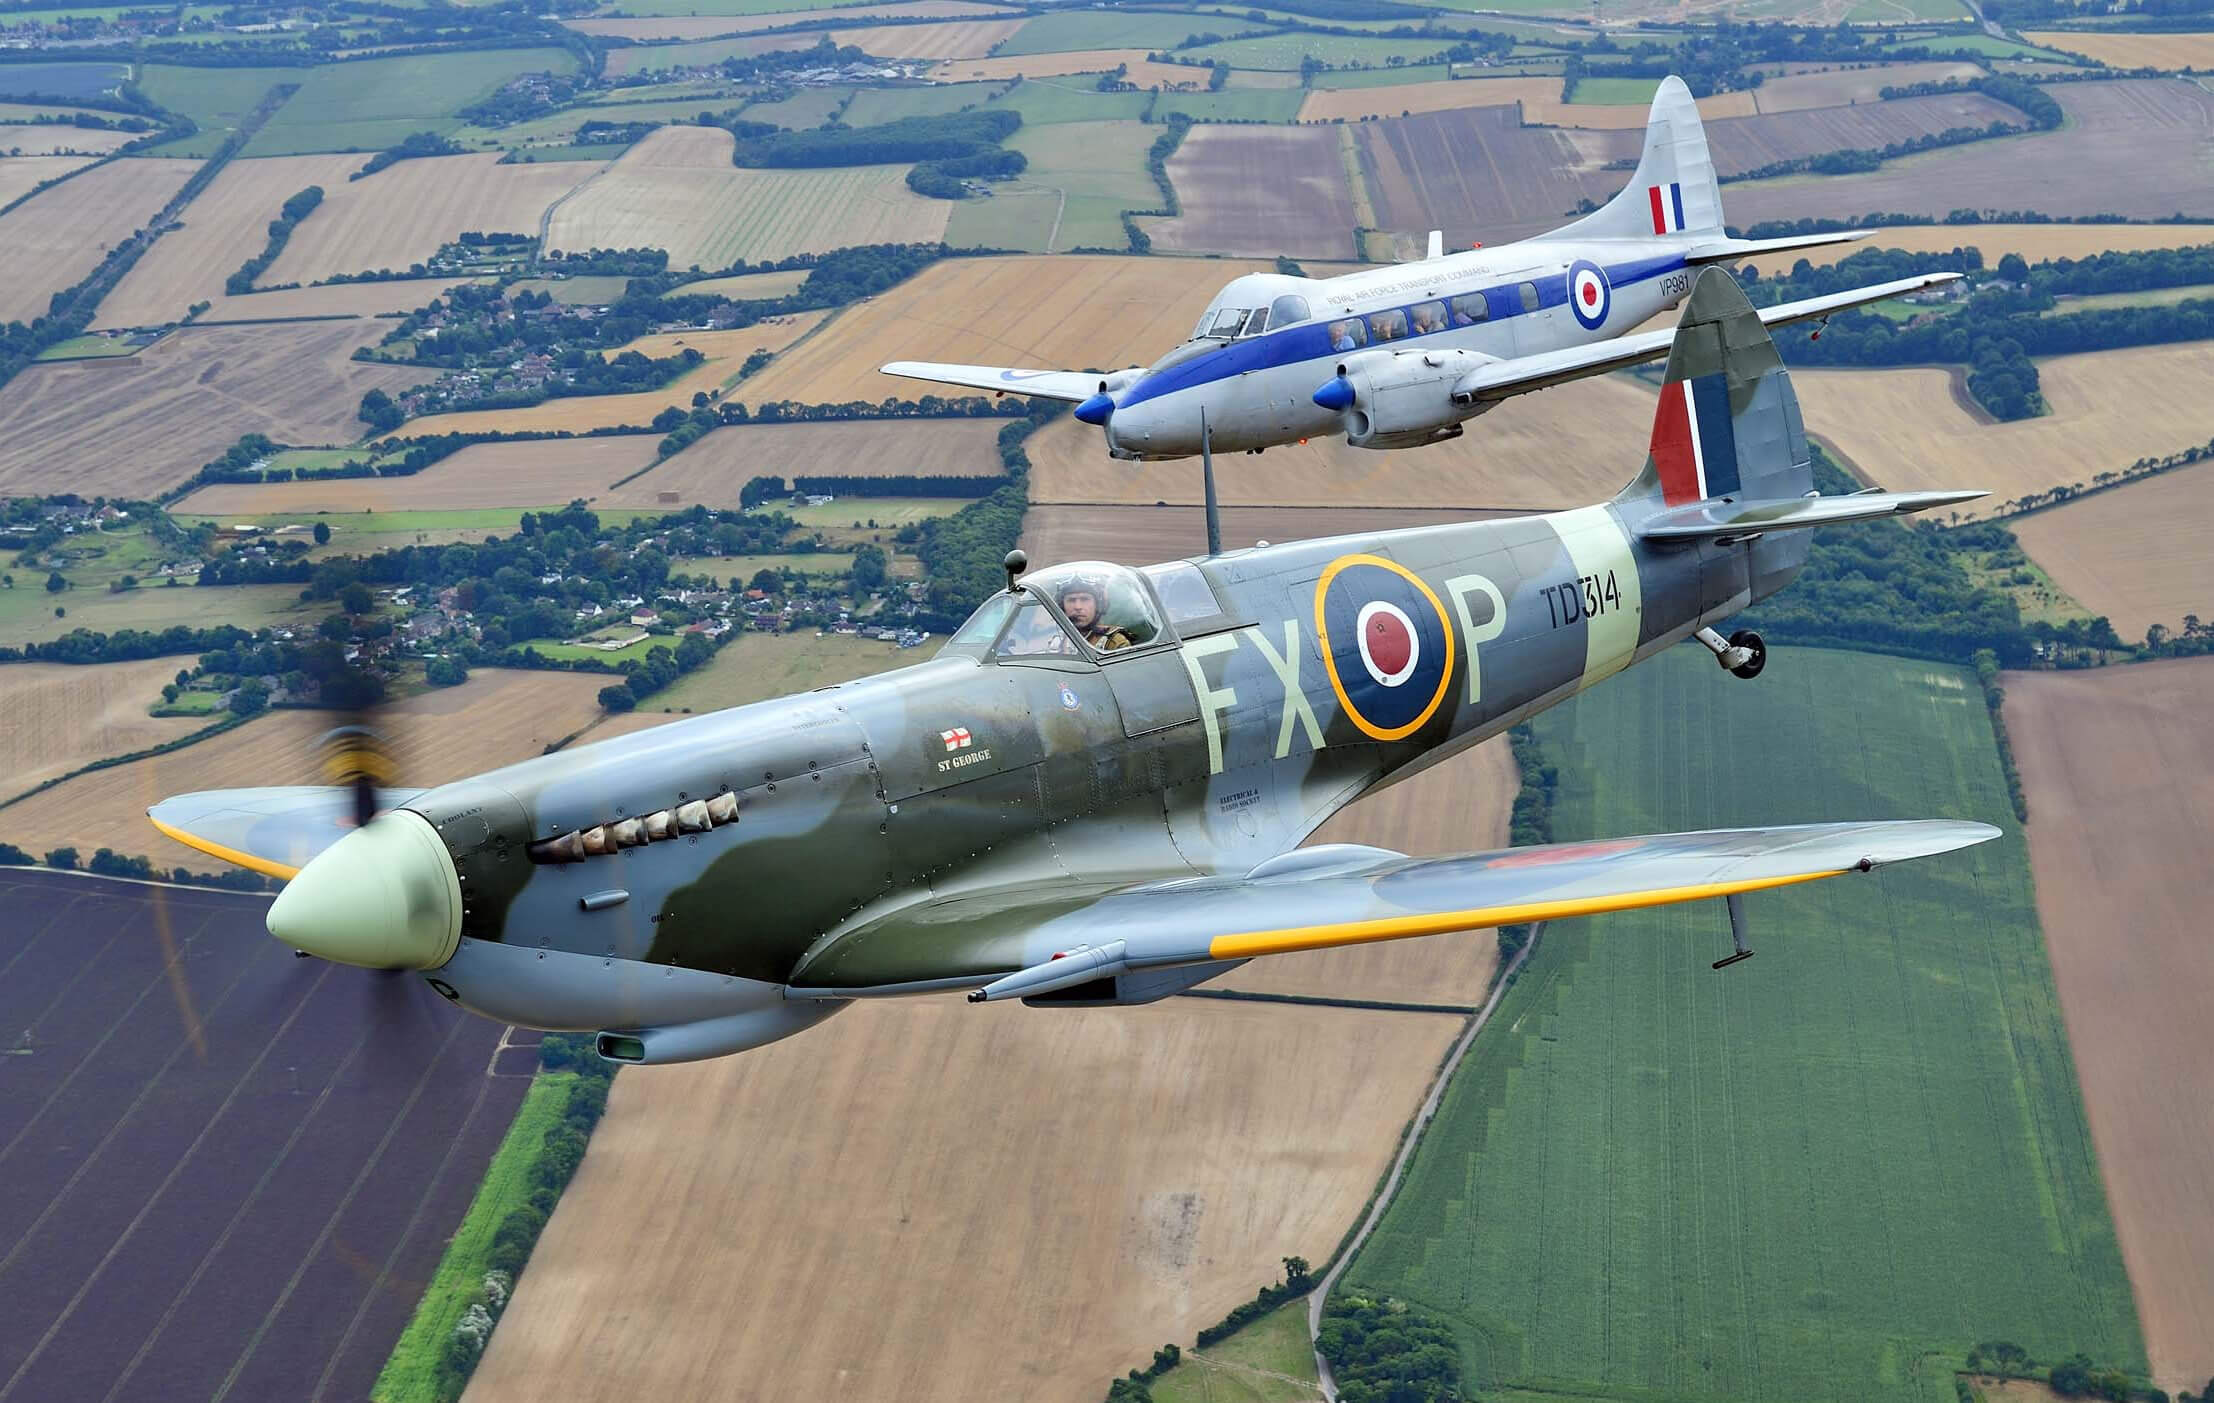 spitfire flight experiences testimonial